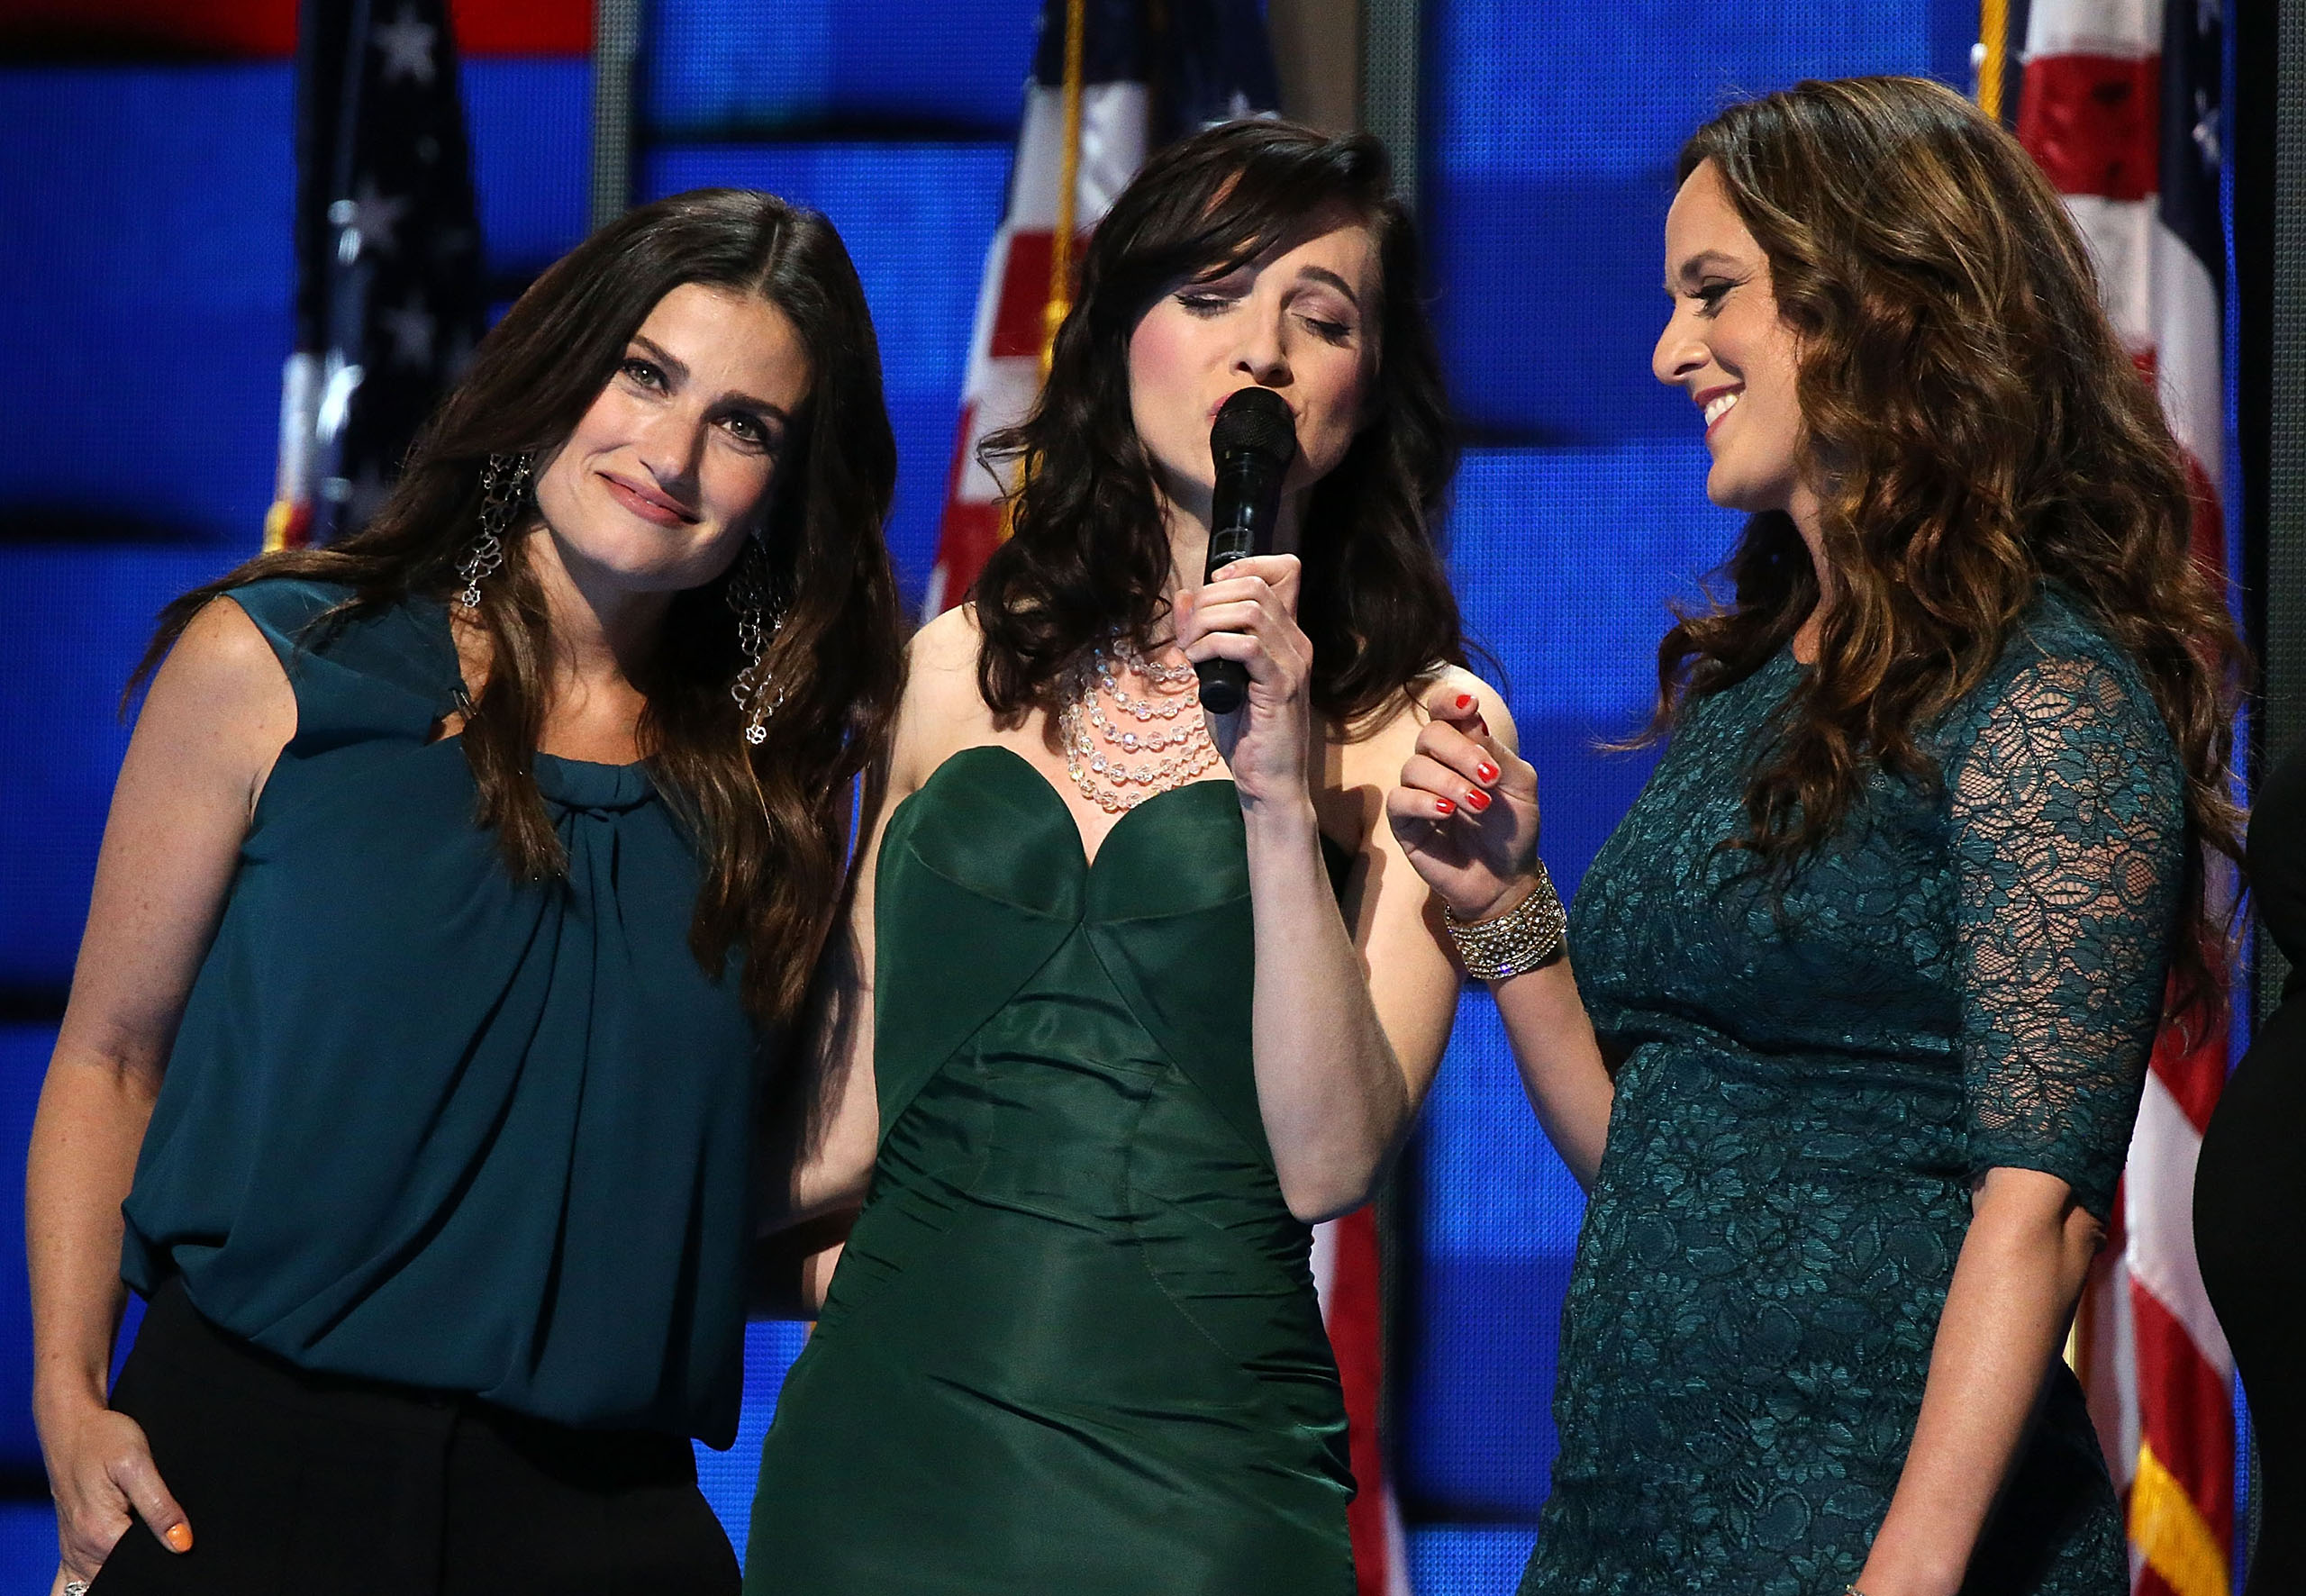 Singer Idina Menzel (L) joins the Stars of Broadway to perform 'What the World Needs Now' honoring those killed in the Pulse nightclub shooting in Orlando on the third day of the Democratic National Convention at the Wells Fargo Center in Philadelphia, Pennsylvania, on July 27, 2016.